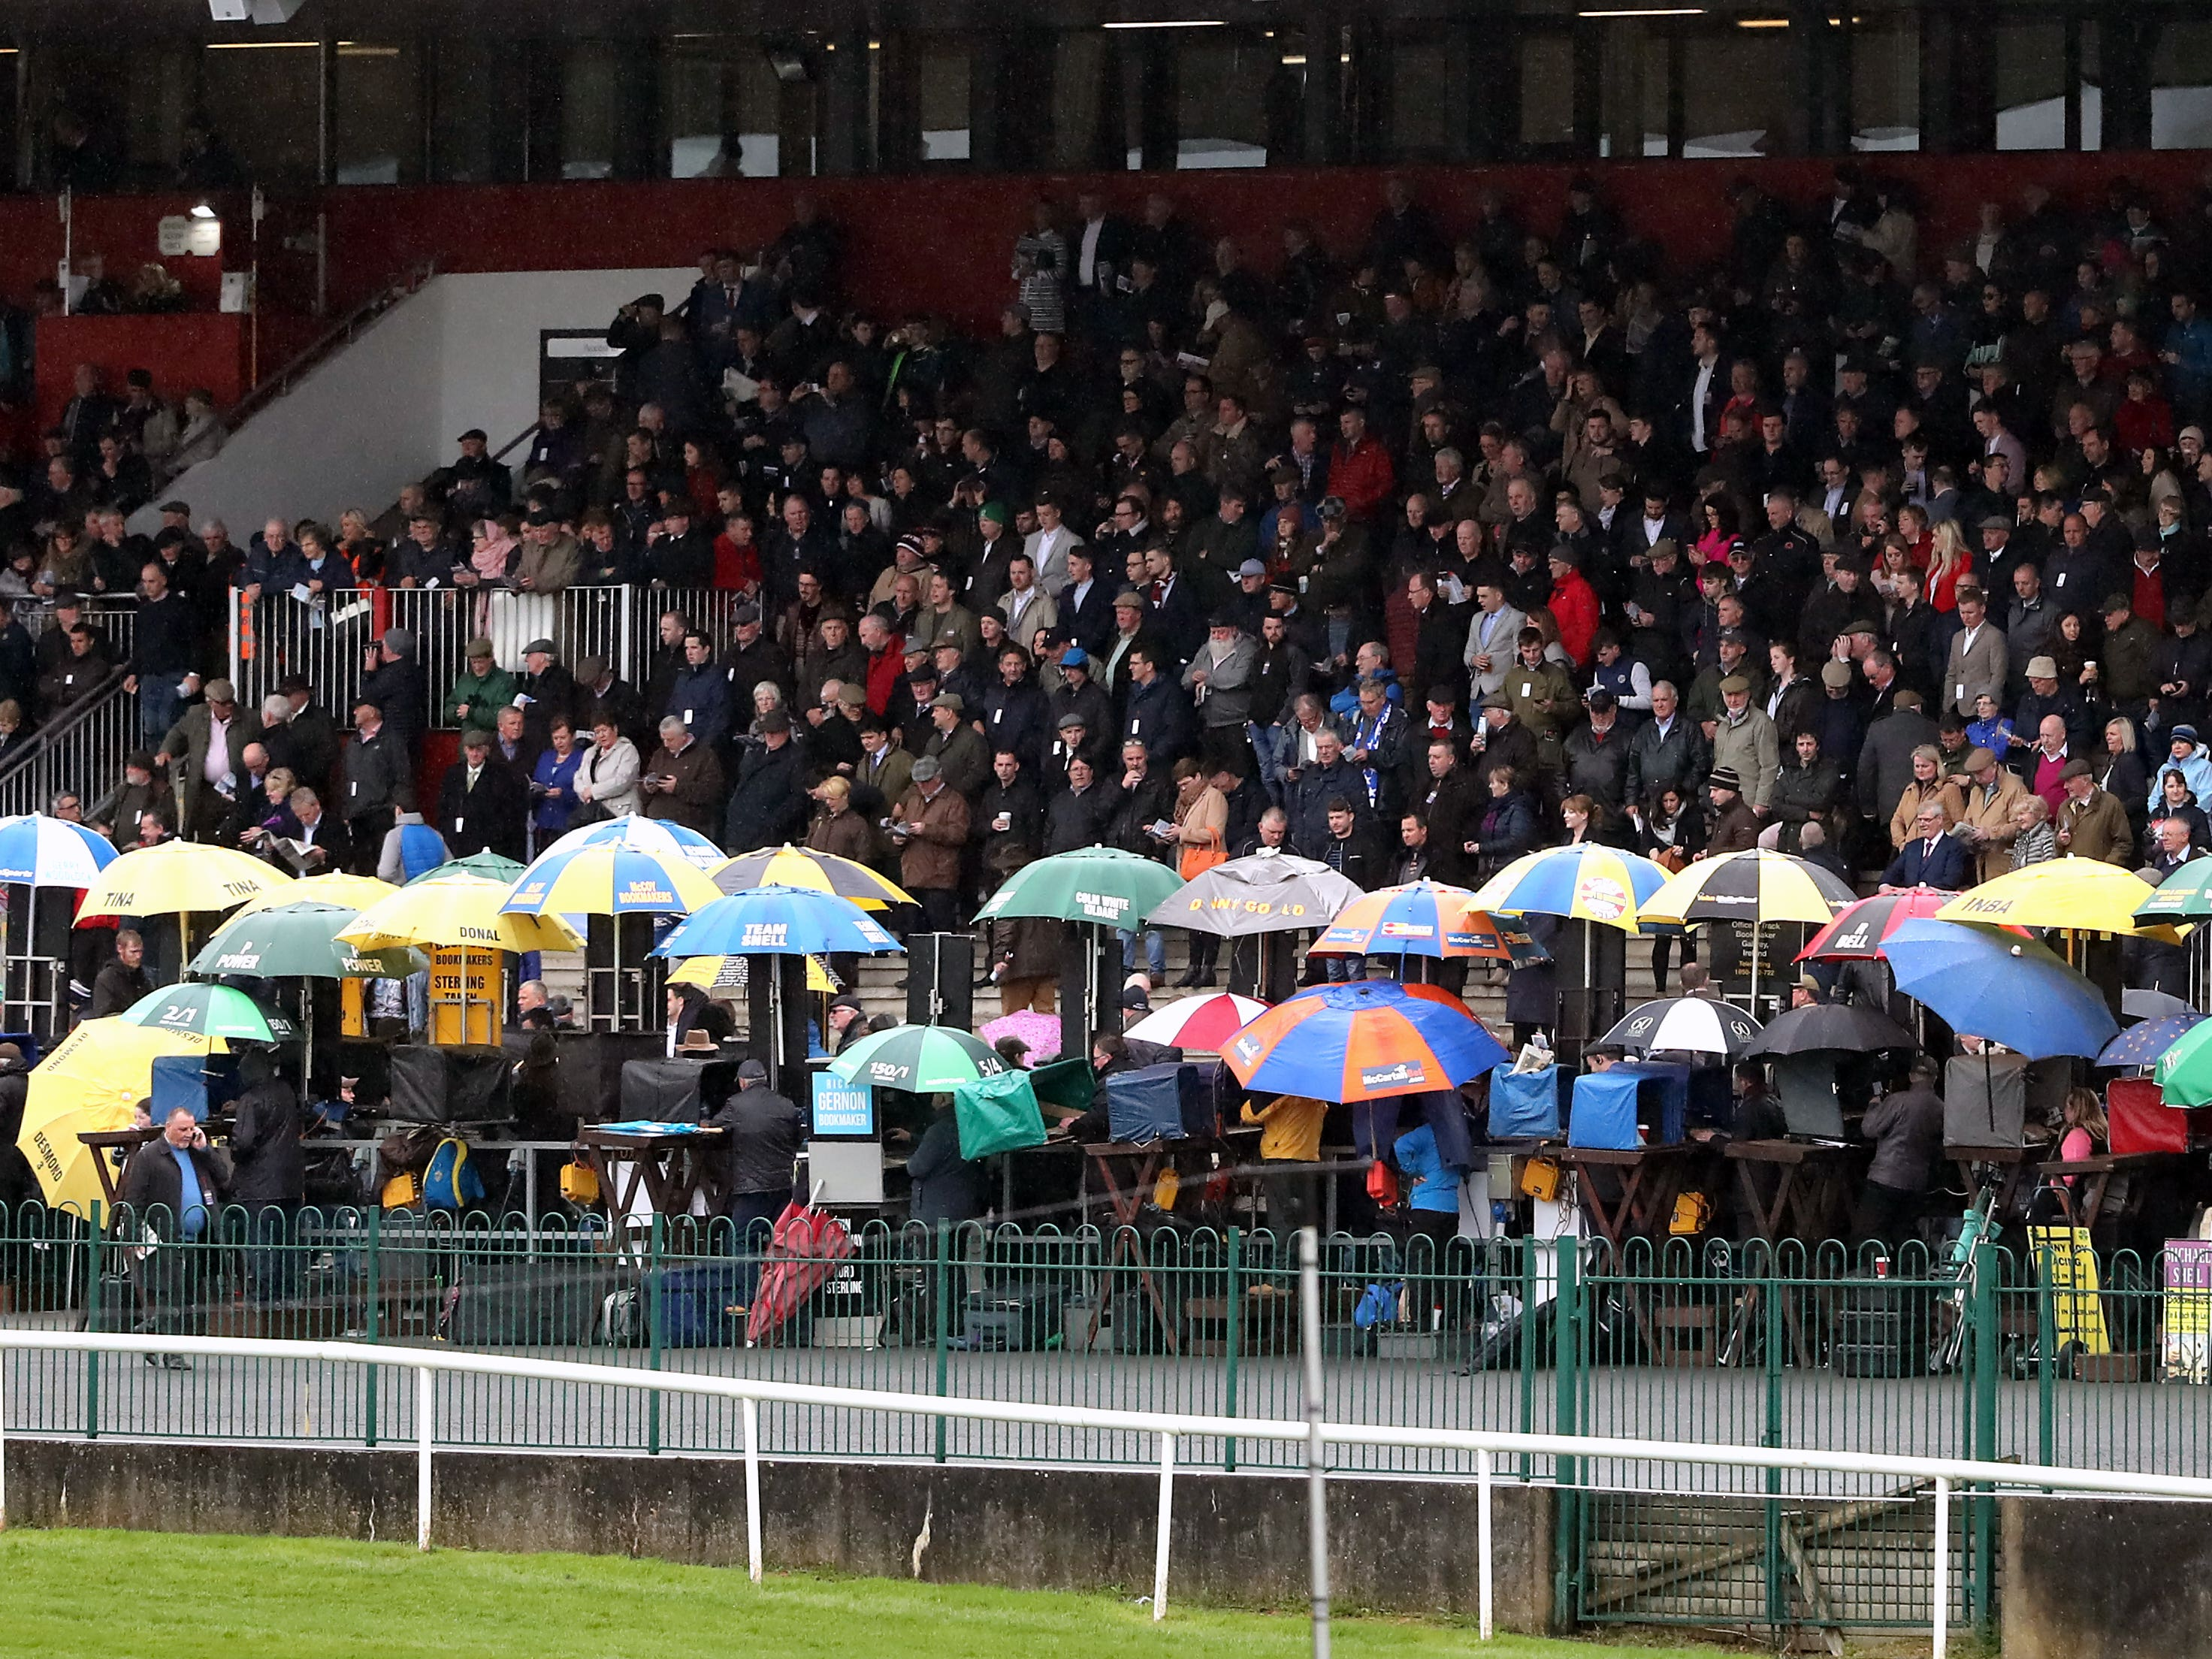 A general view of racegoers in the grandstand at Punchestown (Niall Carson/PA)